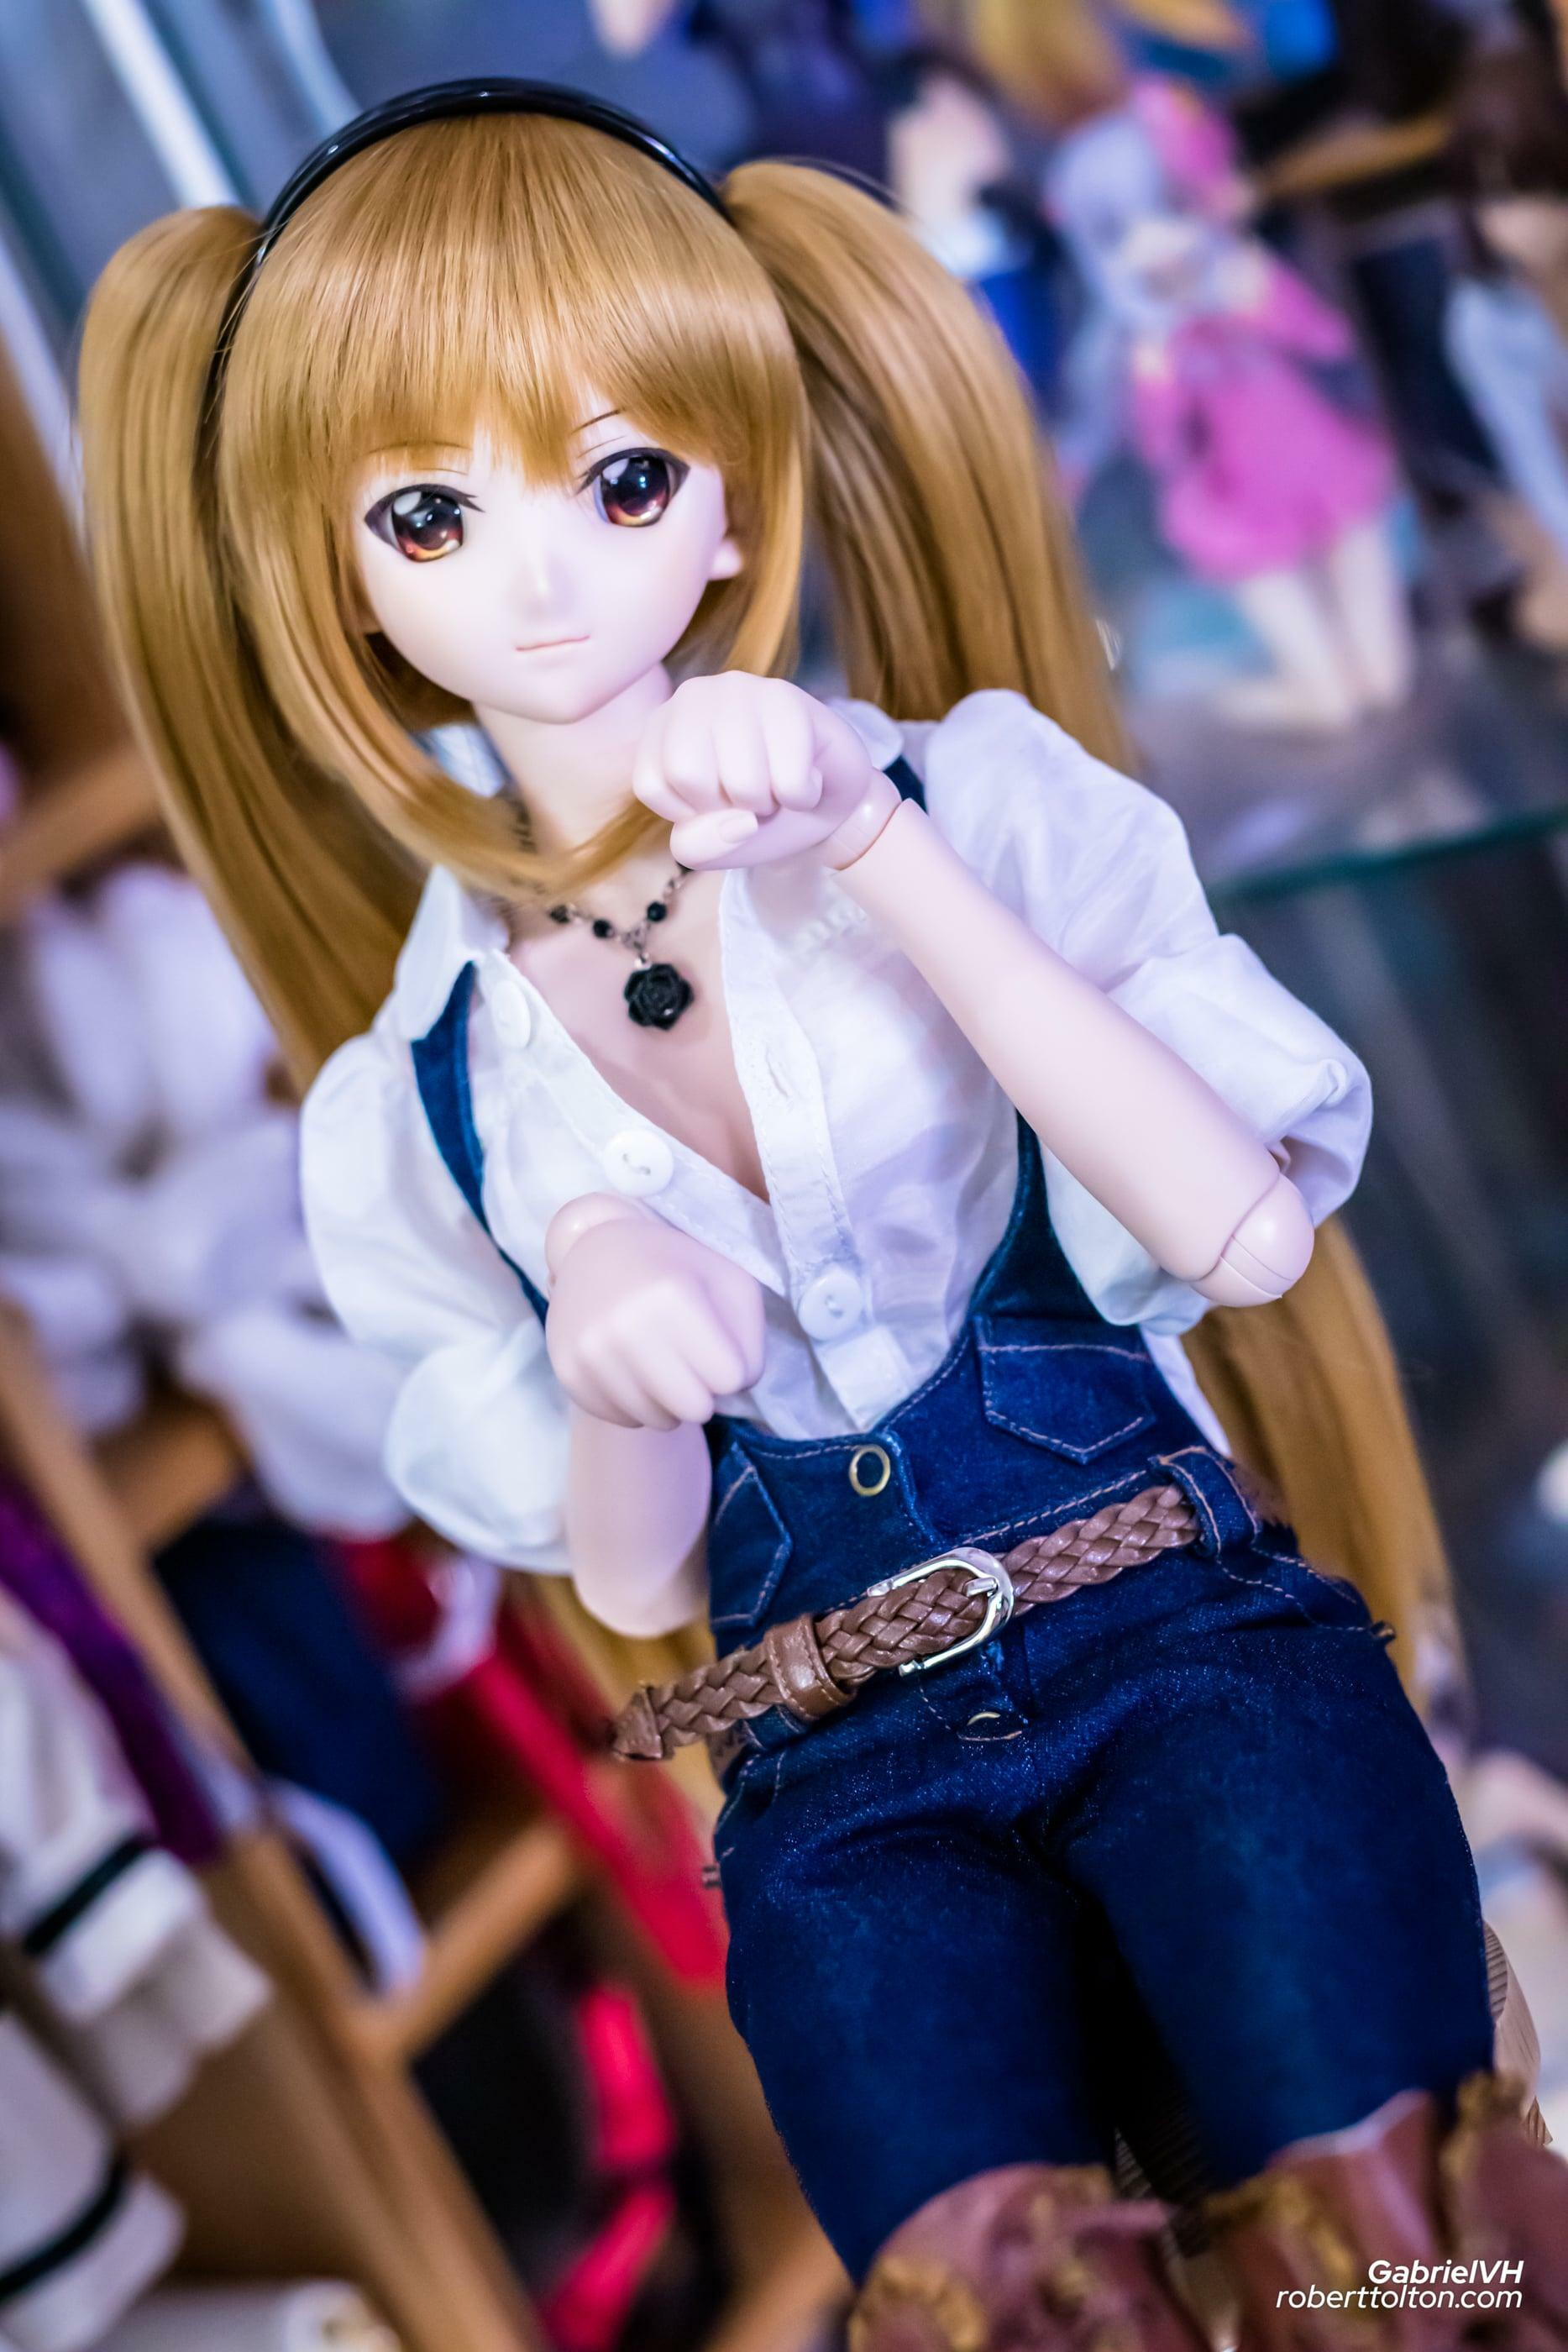 Saber Lily Country Girl 6